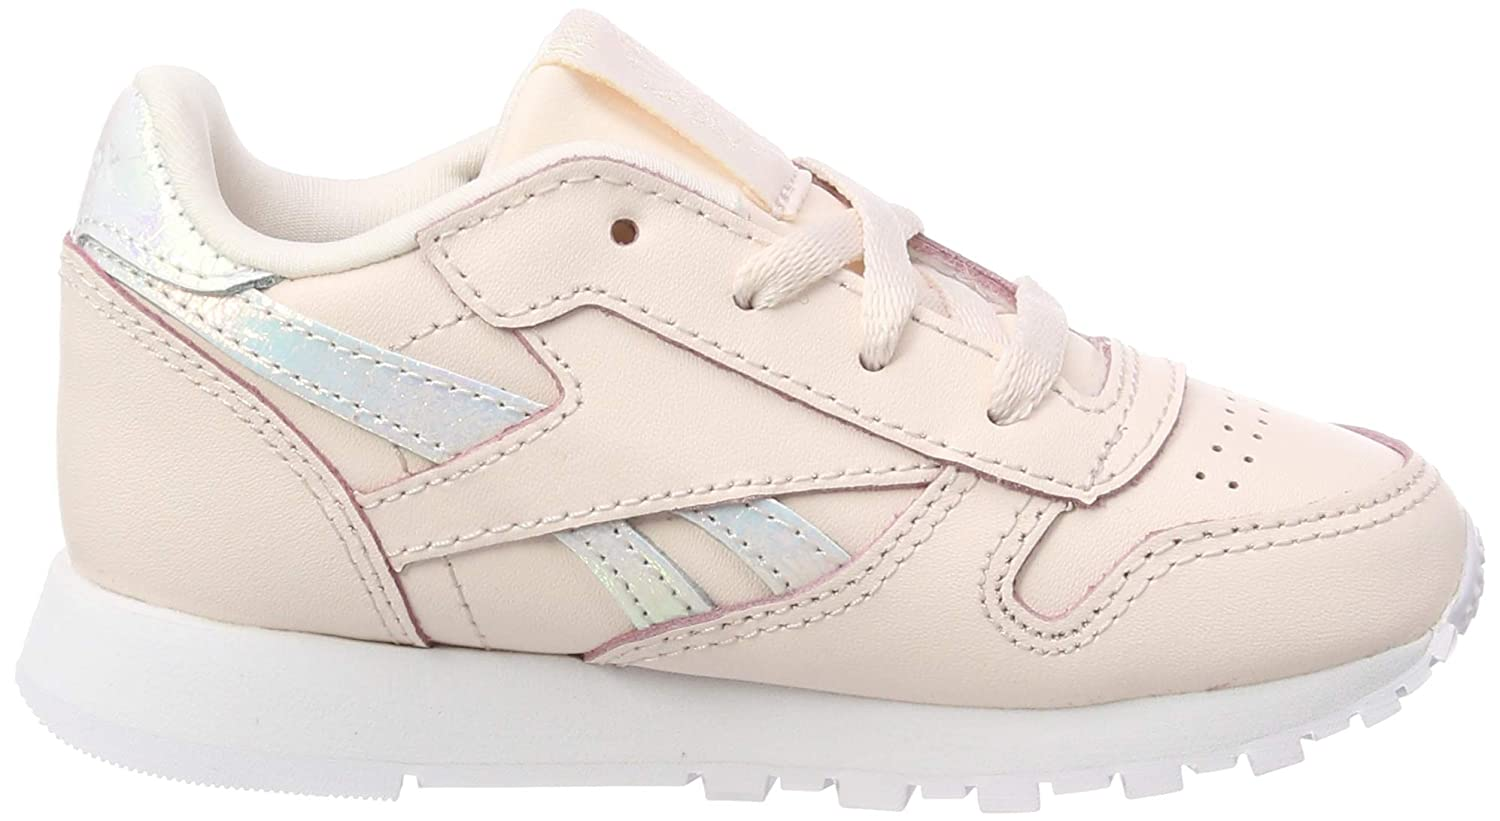 1332c3295a83 Reebok Girls  Classic Leather Gymnastics Shoes  Amazon.co.uk  Shoes   Bags